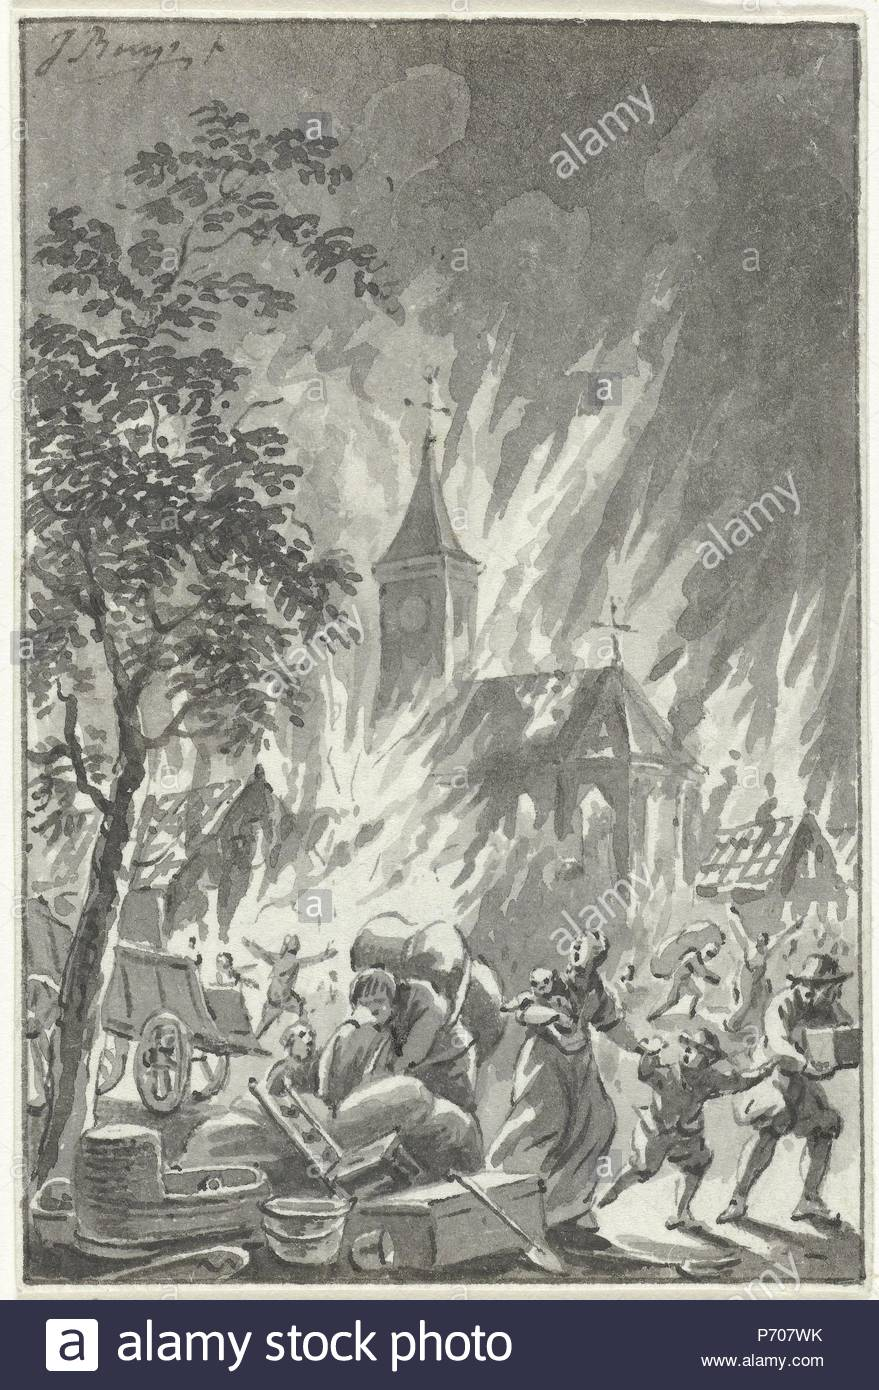 Heavy fire Hilversum The Netherlands, June 25, 1766, Jacobus Buys, 1766 -  1801.